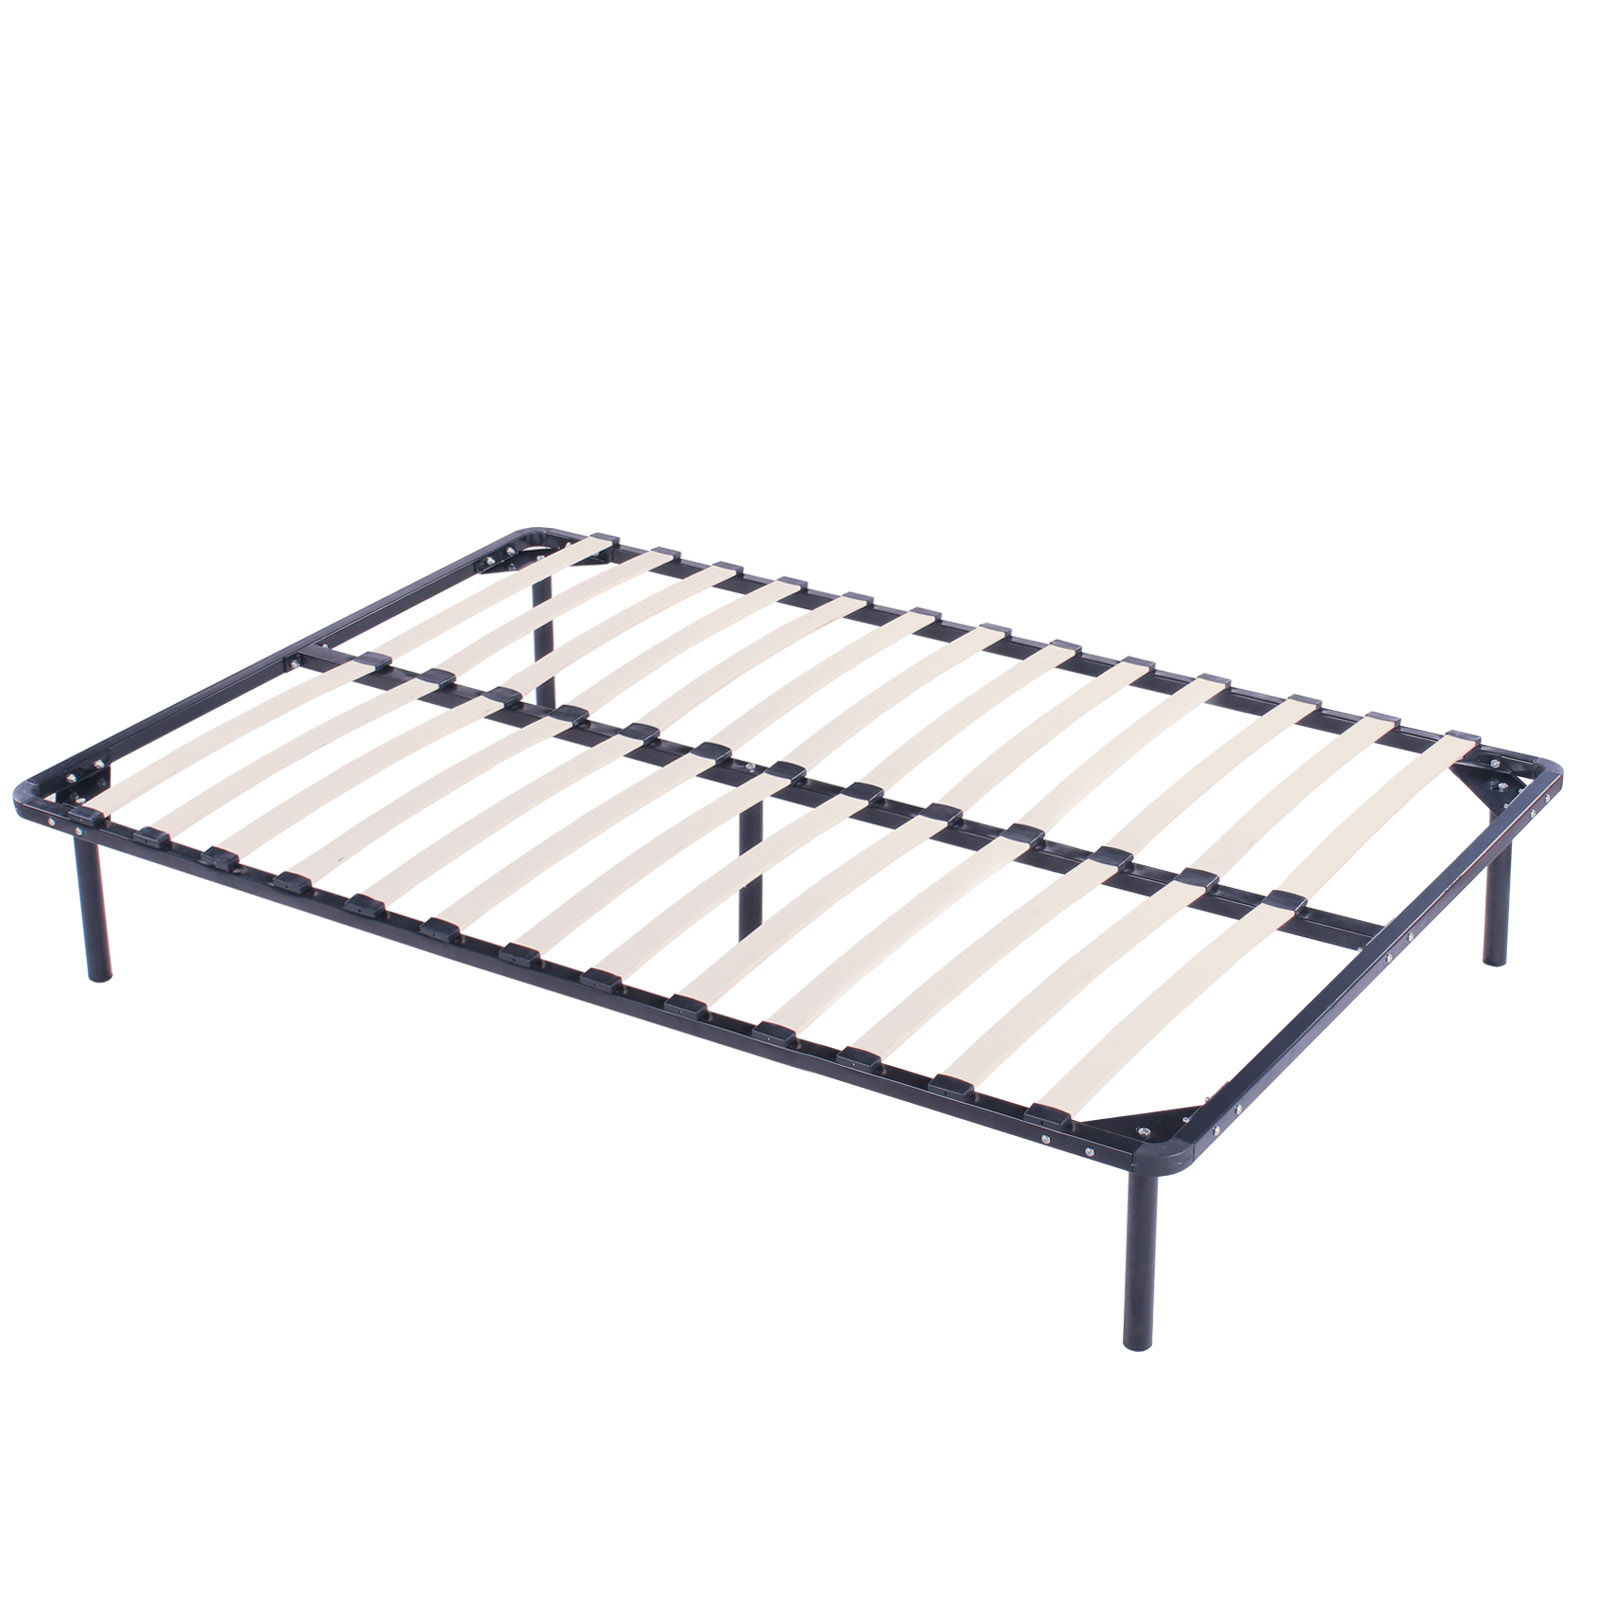 Wood slats metal bed frame platform bedroom mattress for High bed frame queen